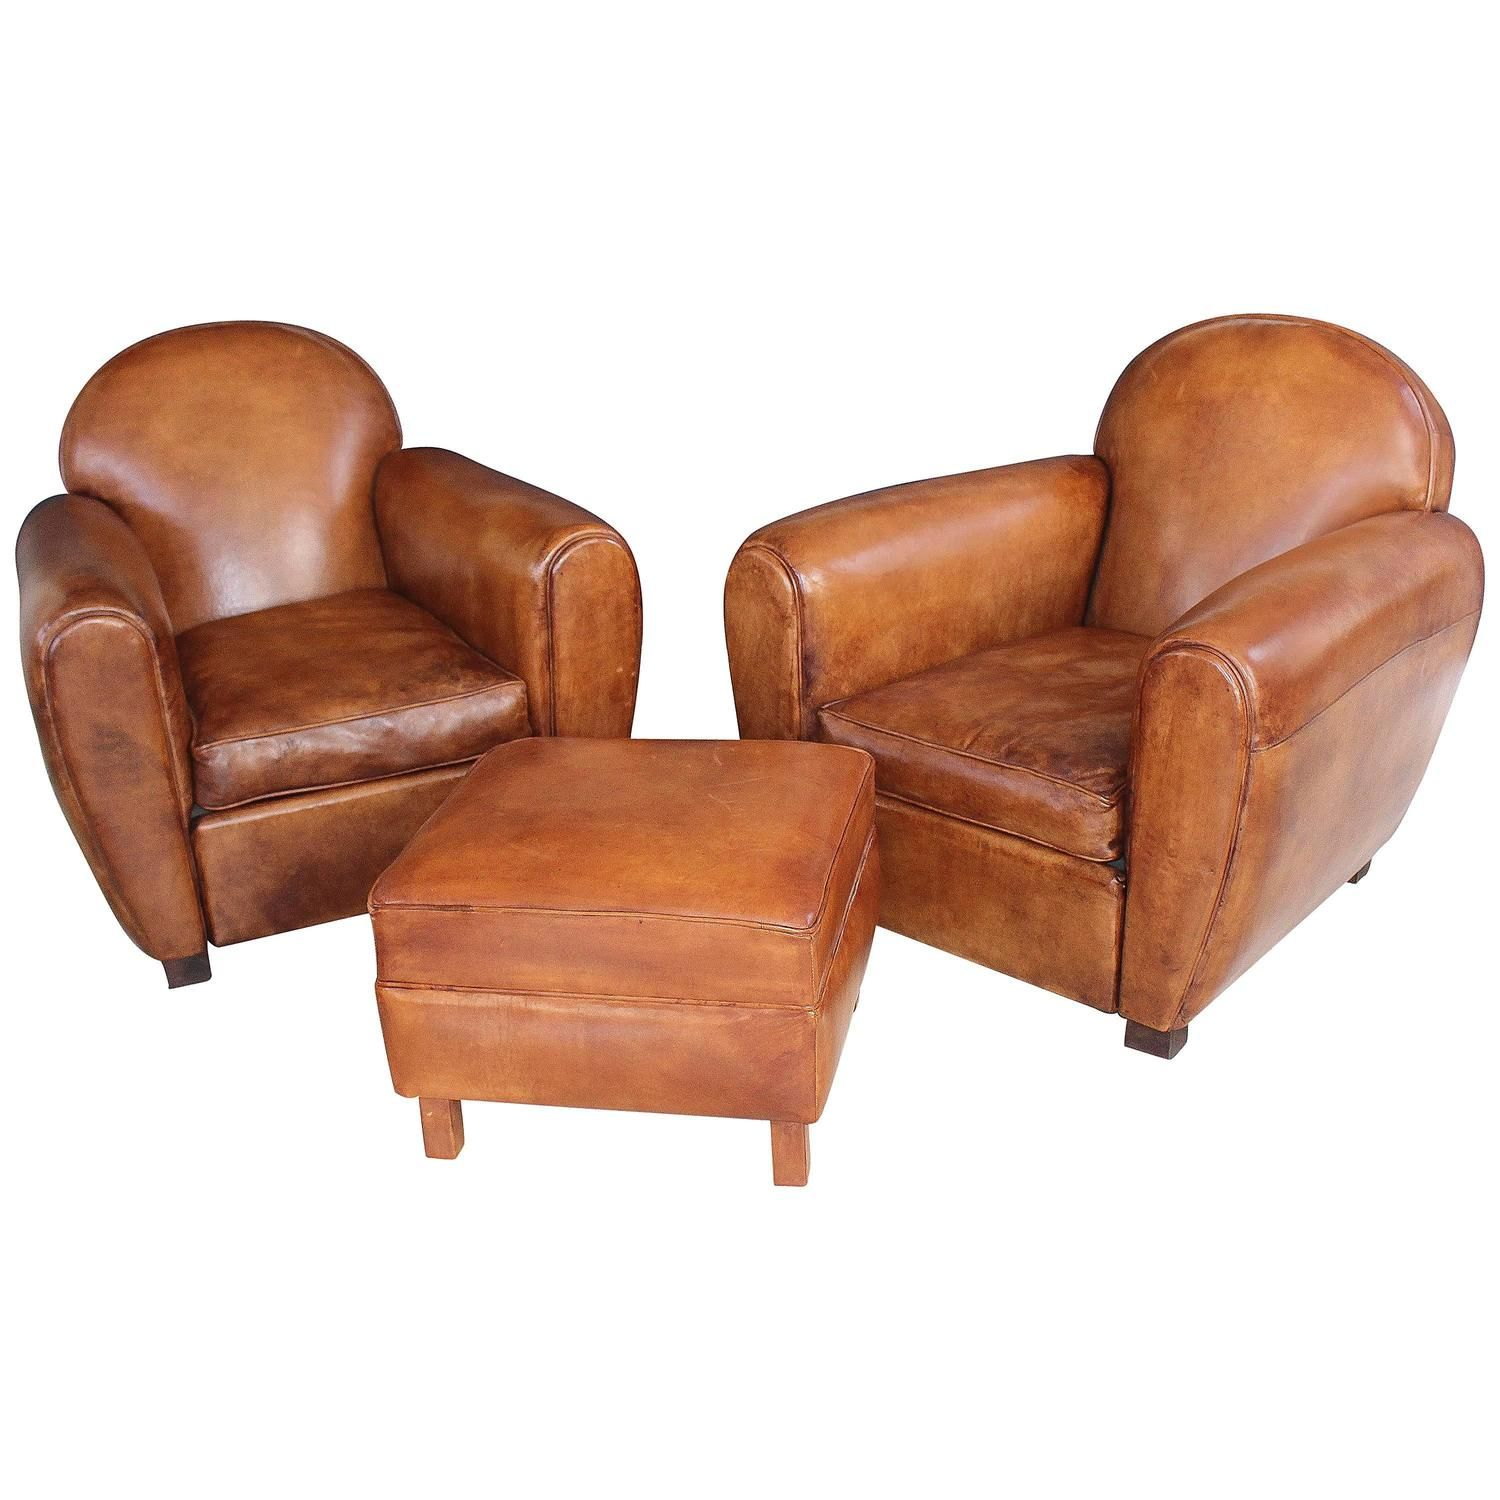 Leather Chairs And Ottomans Sale Pin By Sylvie Moss On Furnish In 2019 Leather Club Chairs Chair